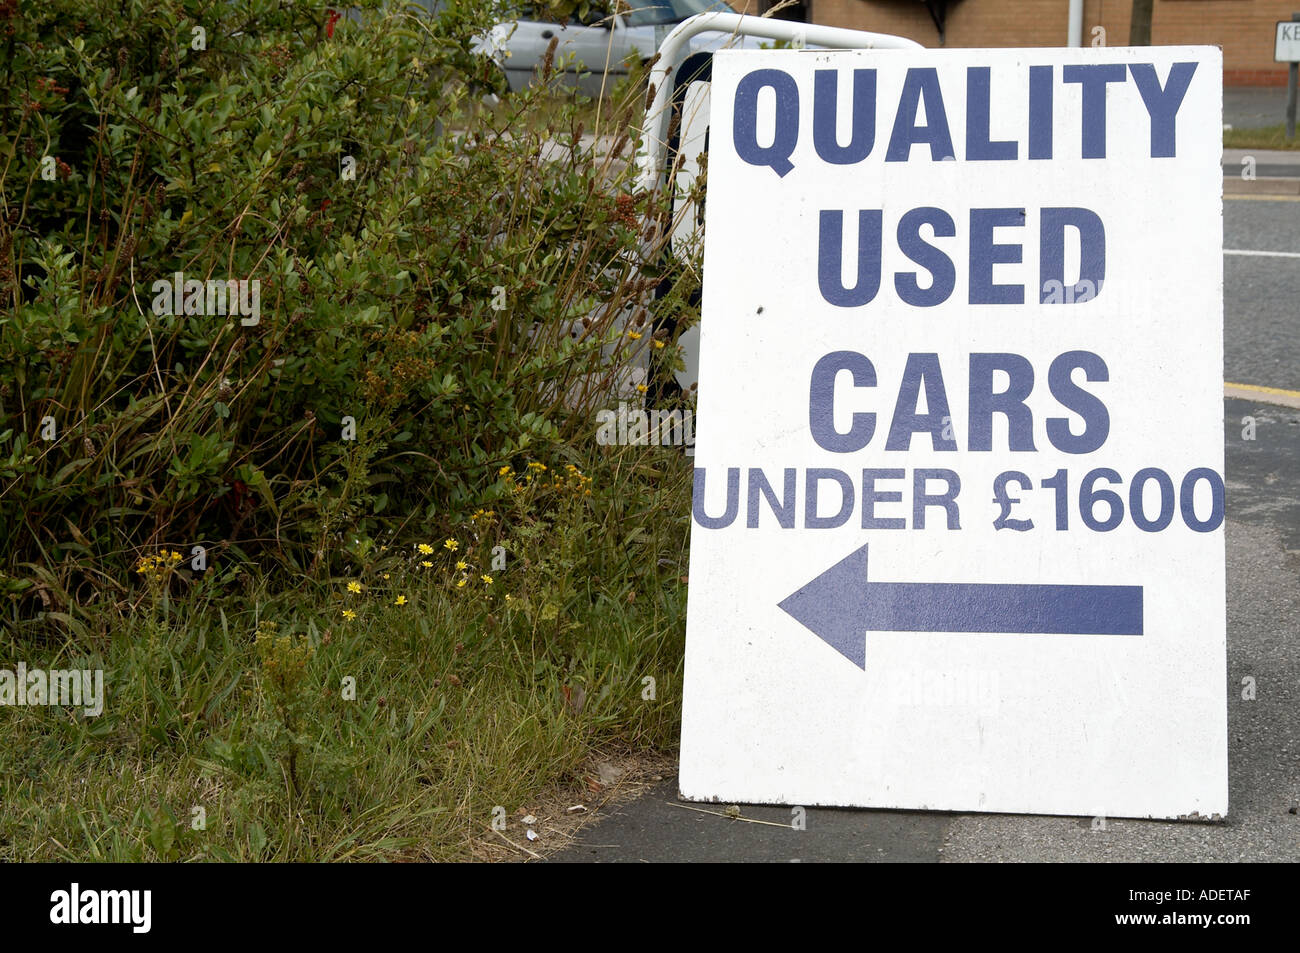 second hand car sales salesman banger old vehicle quality sign road ...